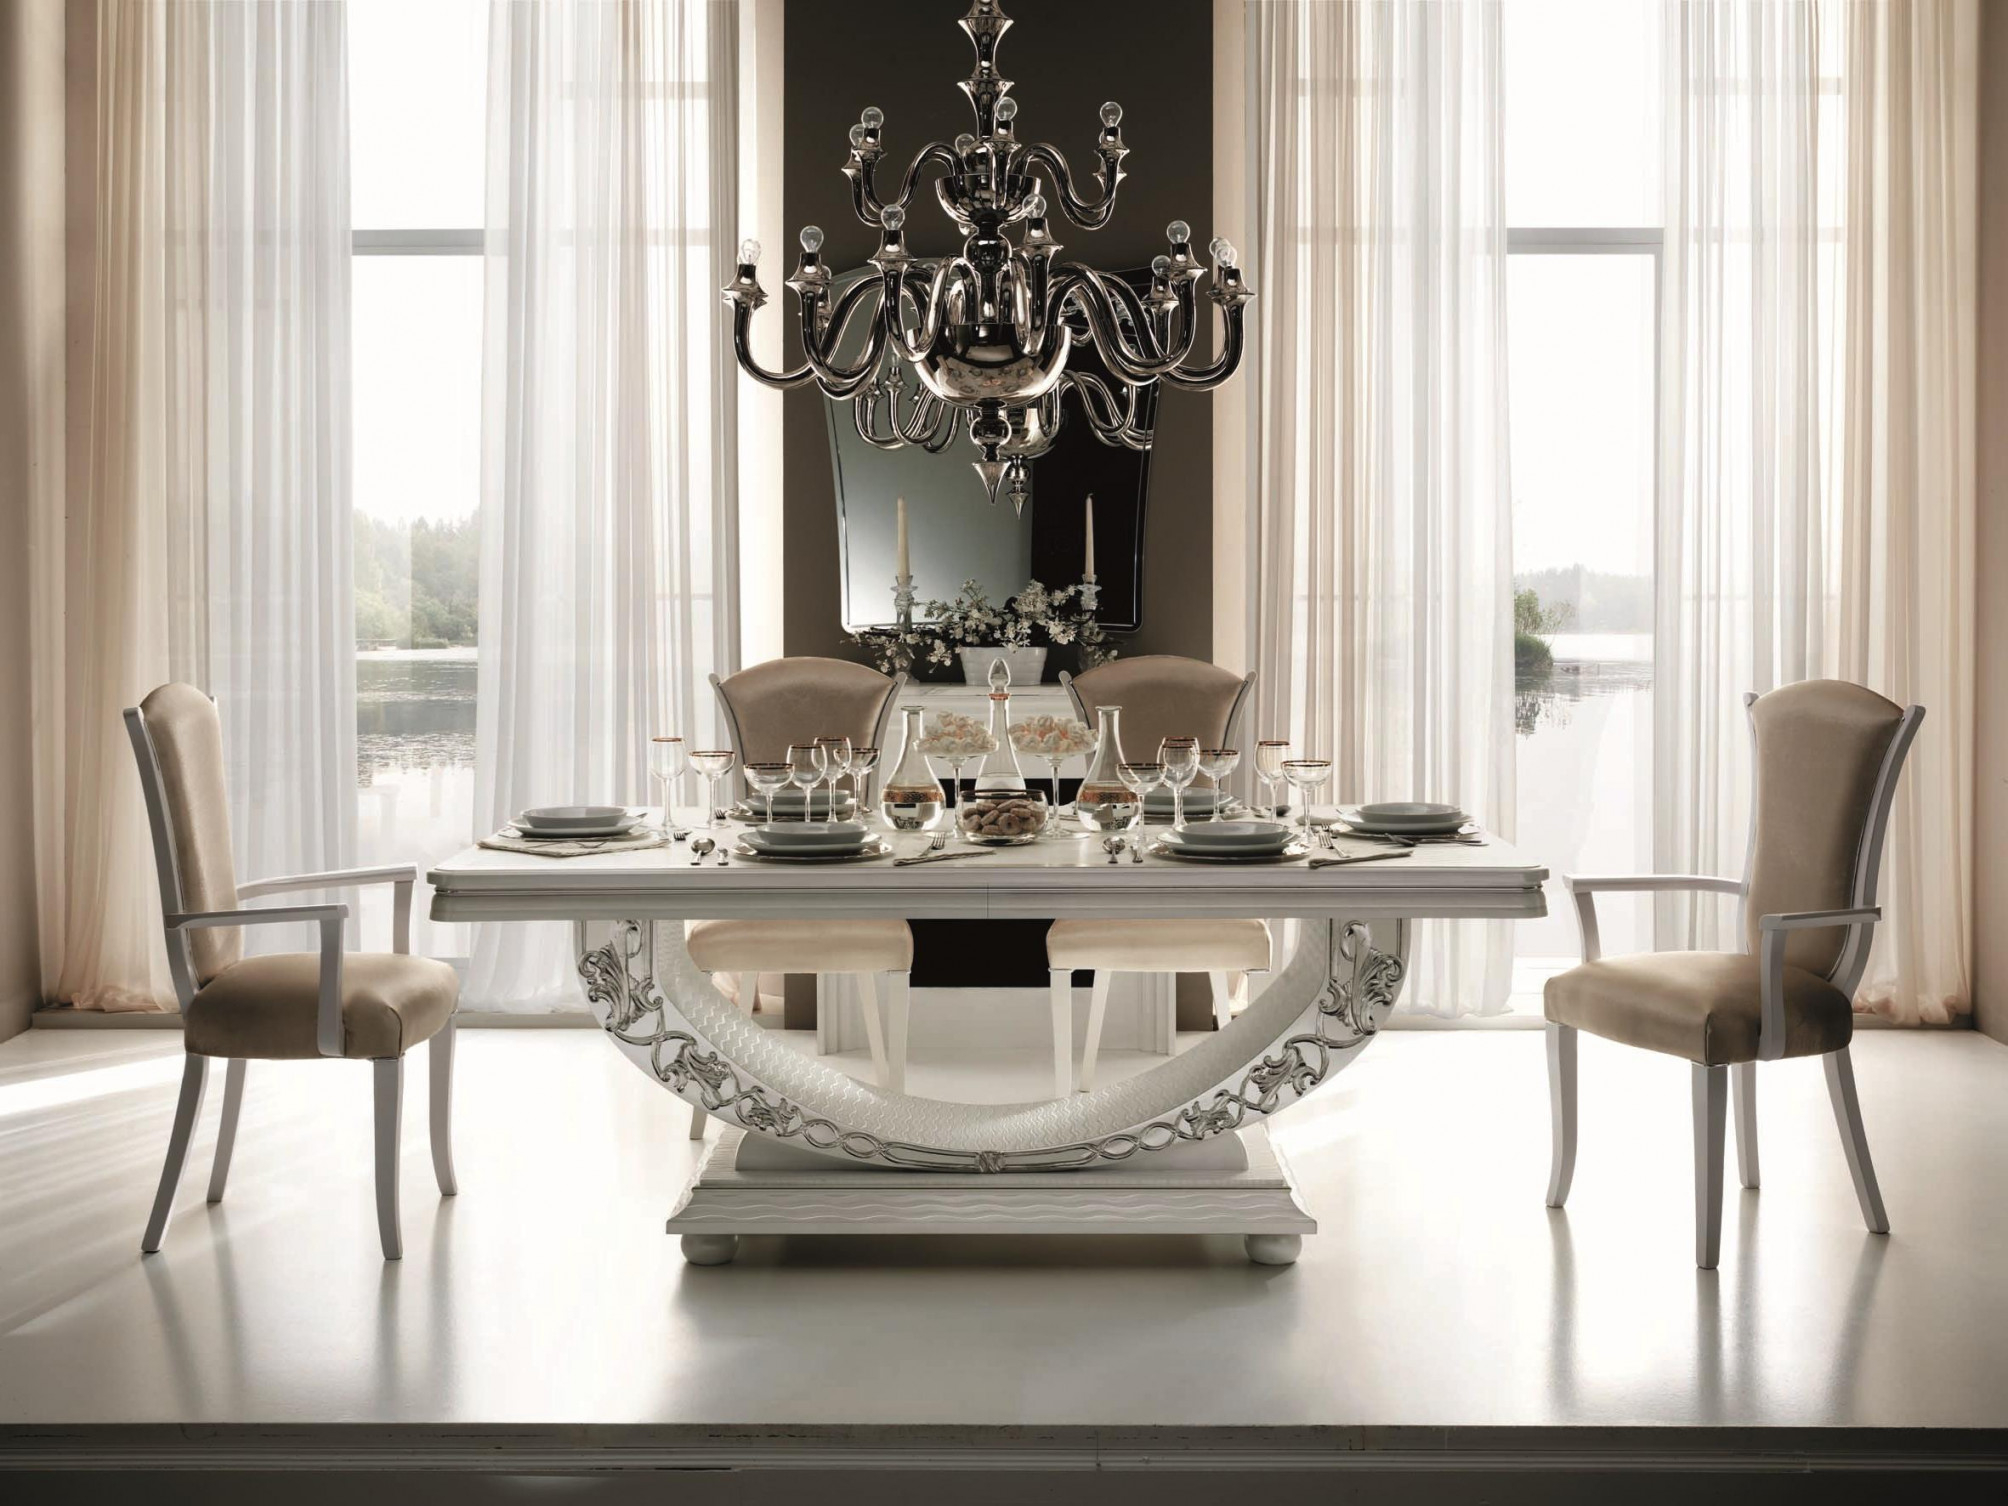 Free photo: Elegant Dining Table - Glass, Turntable ...